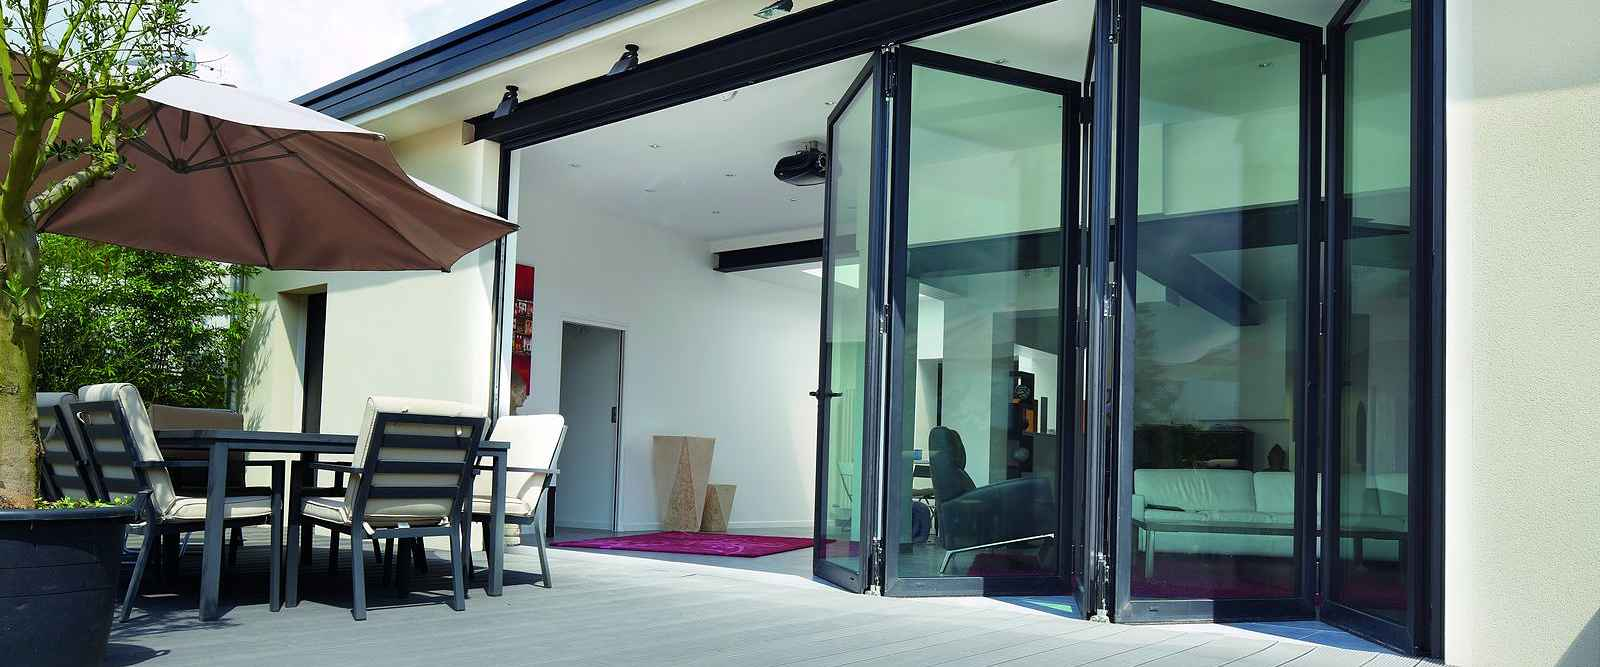 Marlin Windows | Aluminium Windows & Doors Retailer & Manufacturer